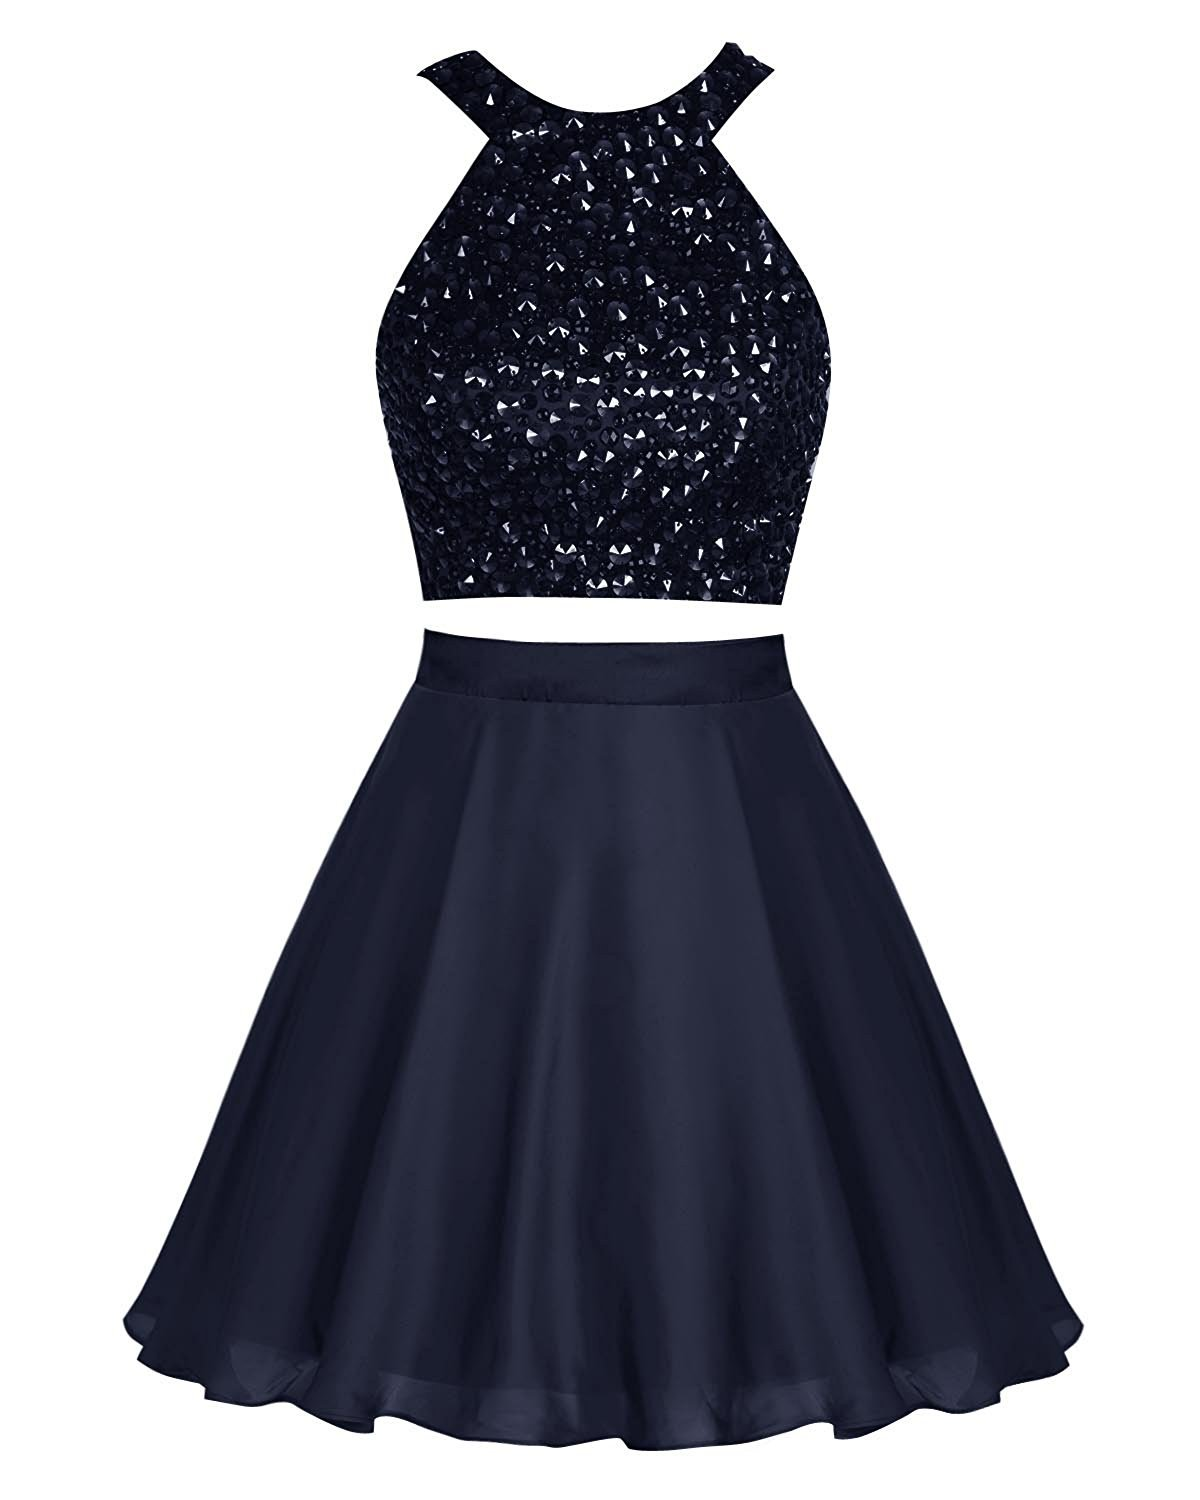 Primary image for Short Chiffon Halter Homecoming Dress Beading Prom Dress Party Dresses Navy 2018